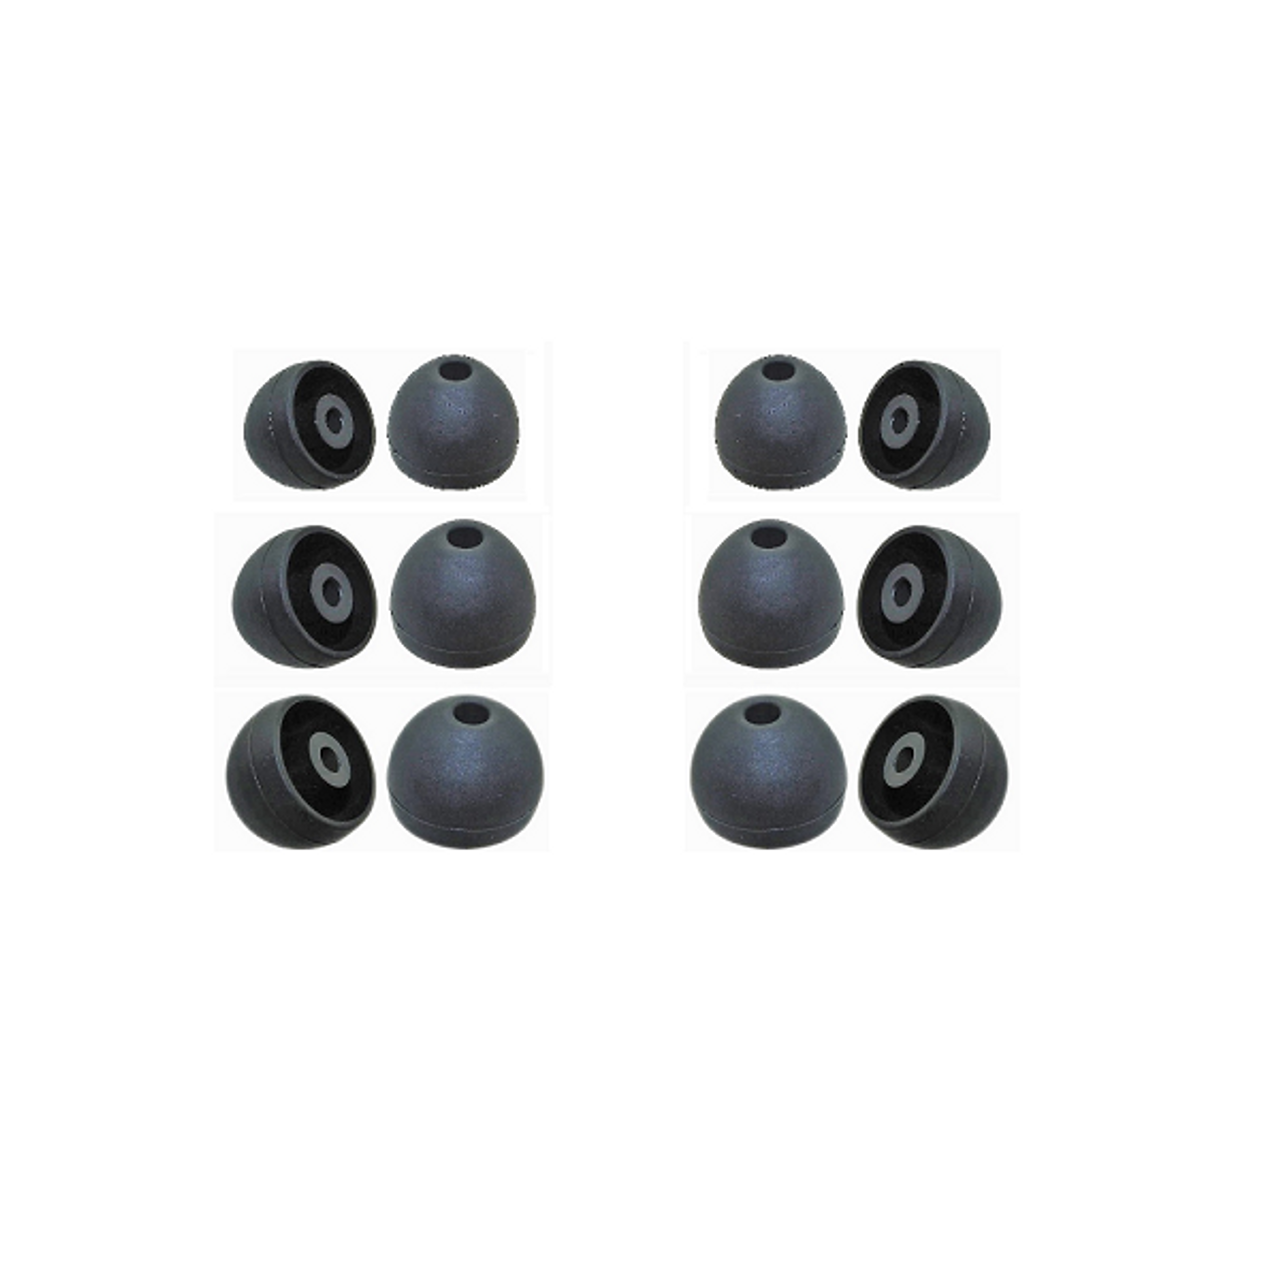 replacement earbud tips for Pyle